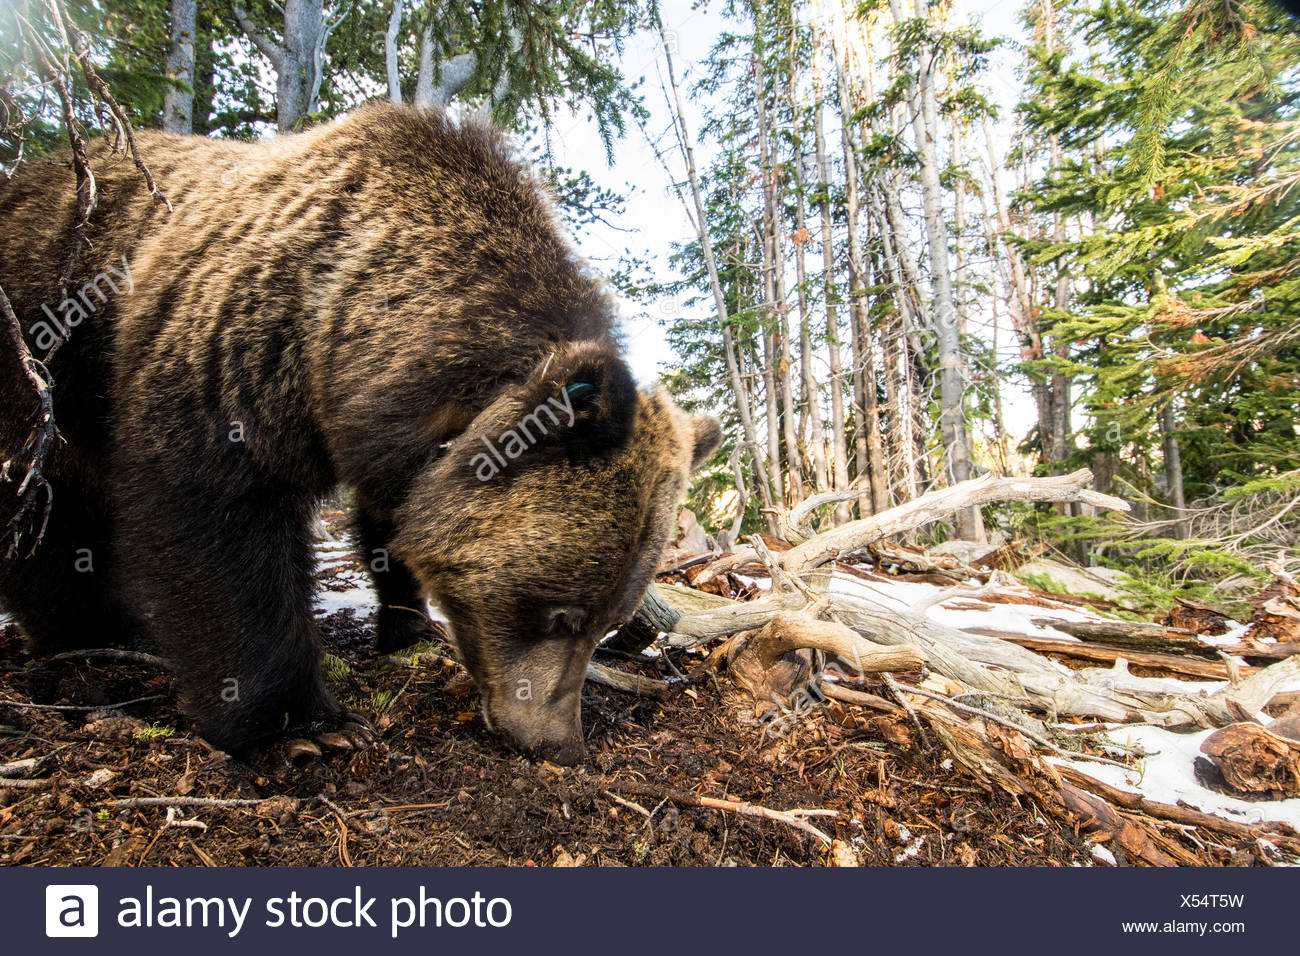 A remote camera captures a grizzly bear in Wyoming's Beartooth Pass. - Stock Image